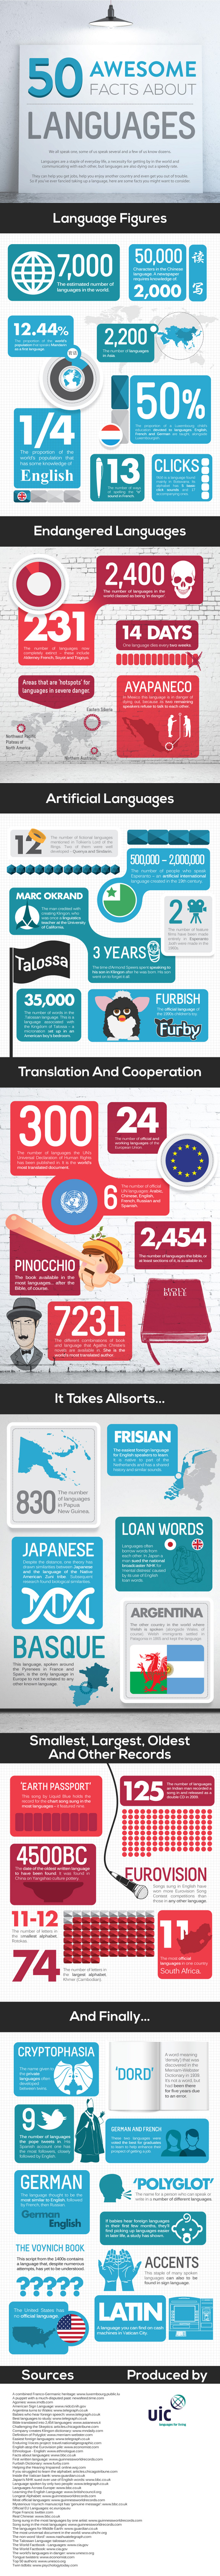 Awesome Facts about the Languages